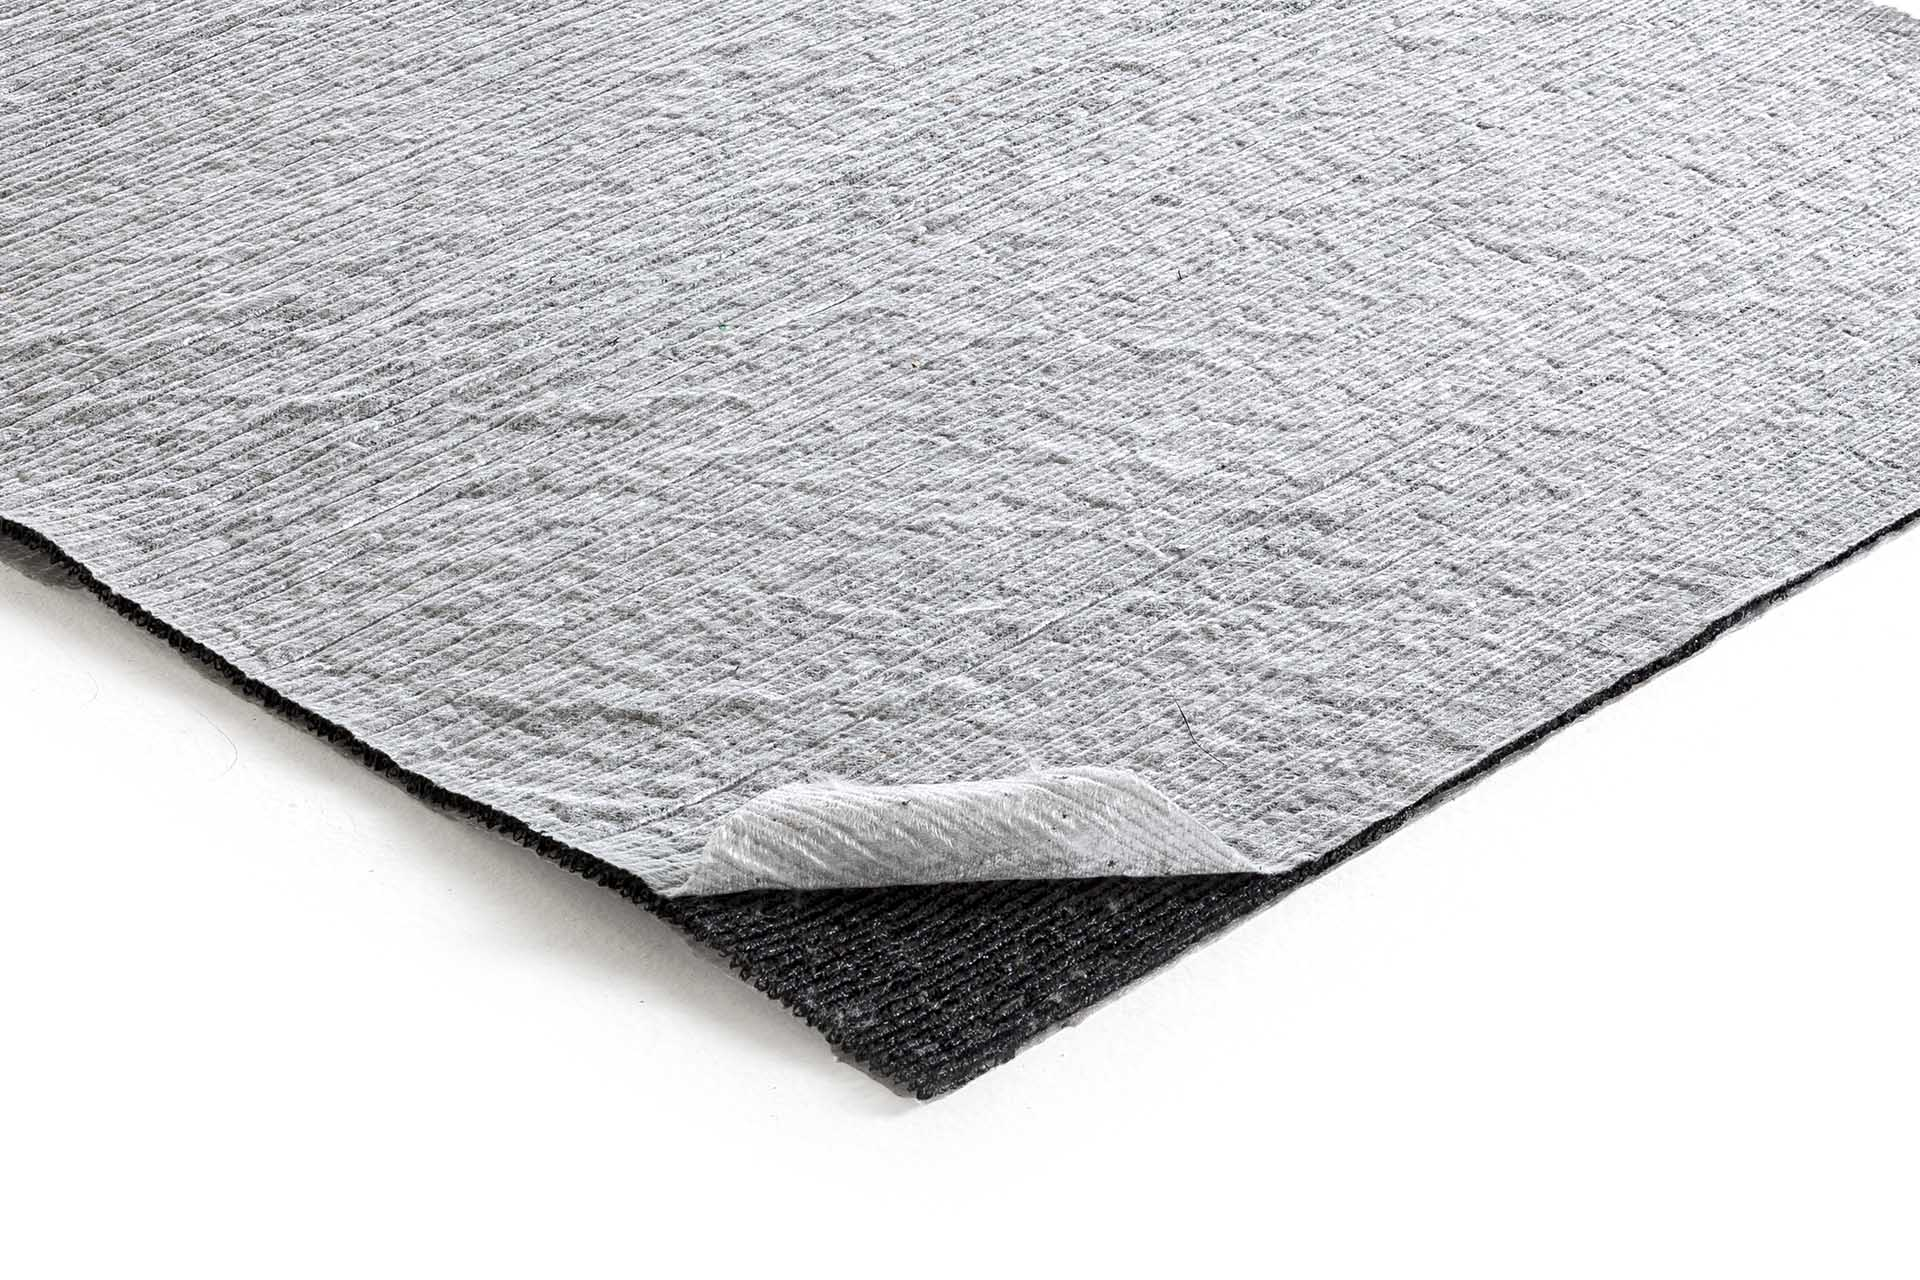 Drainage geocomposite: core of PP monofilaments bonded to 2 nonwoven geotextiles, 8 mm thick